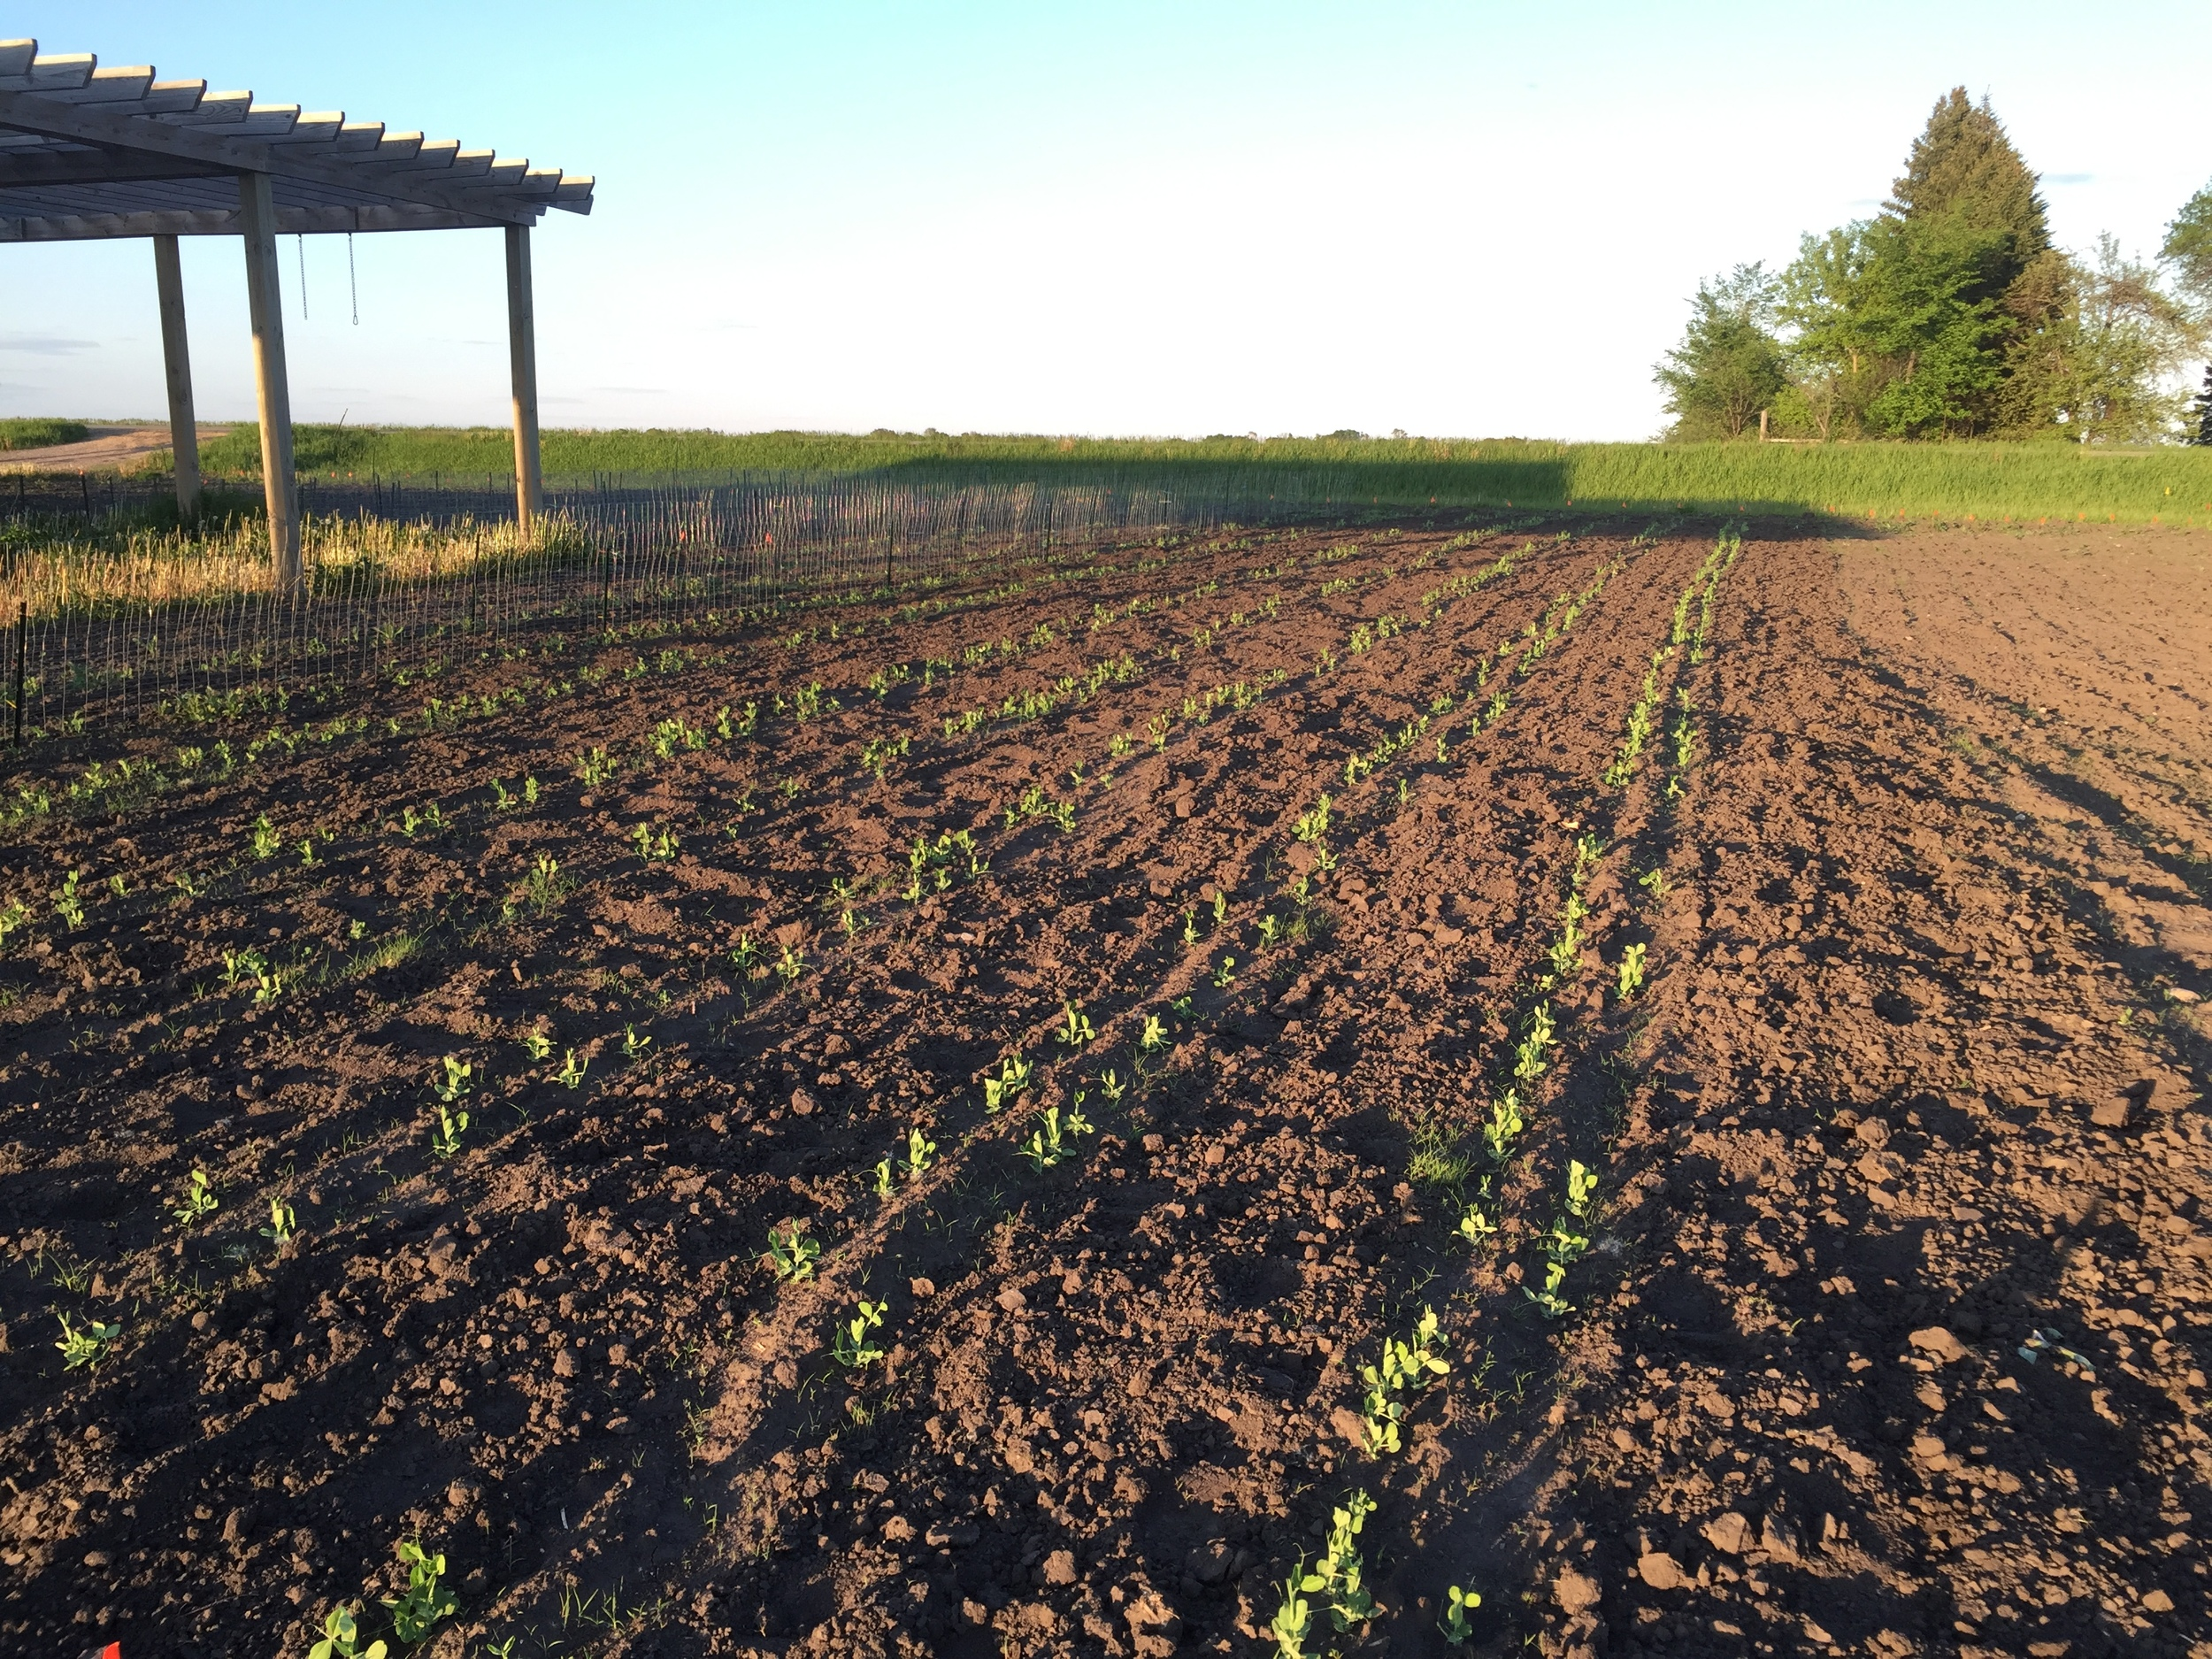 Peas are looking good.